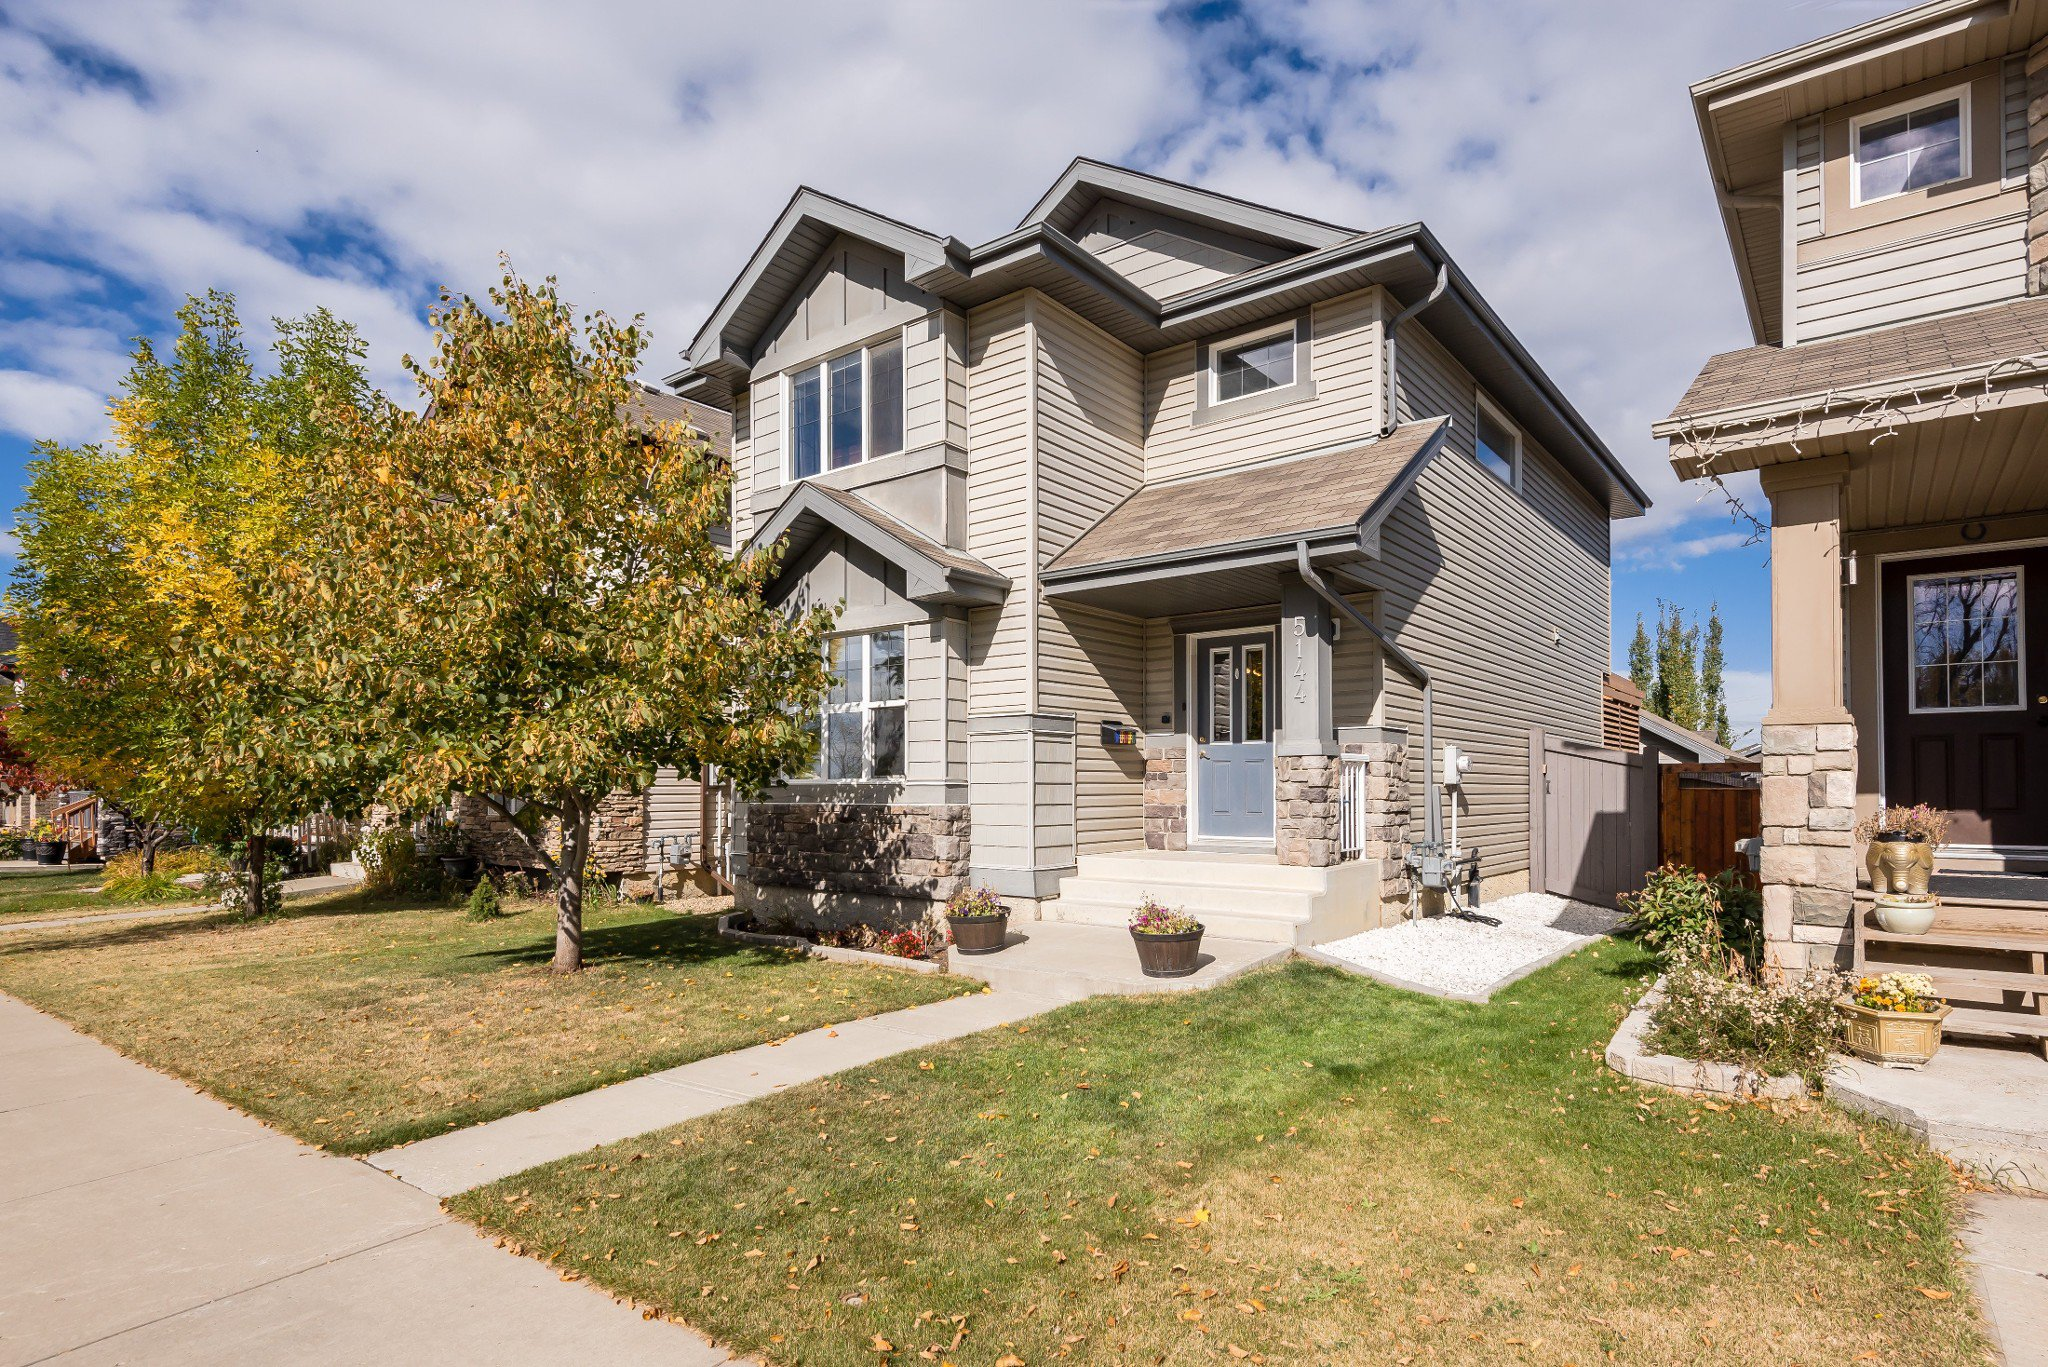 Main Photo: 5144 4Ave SW in Edmonton: House for sale : MLS®# E4215660